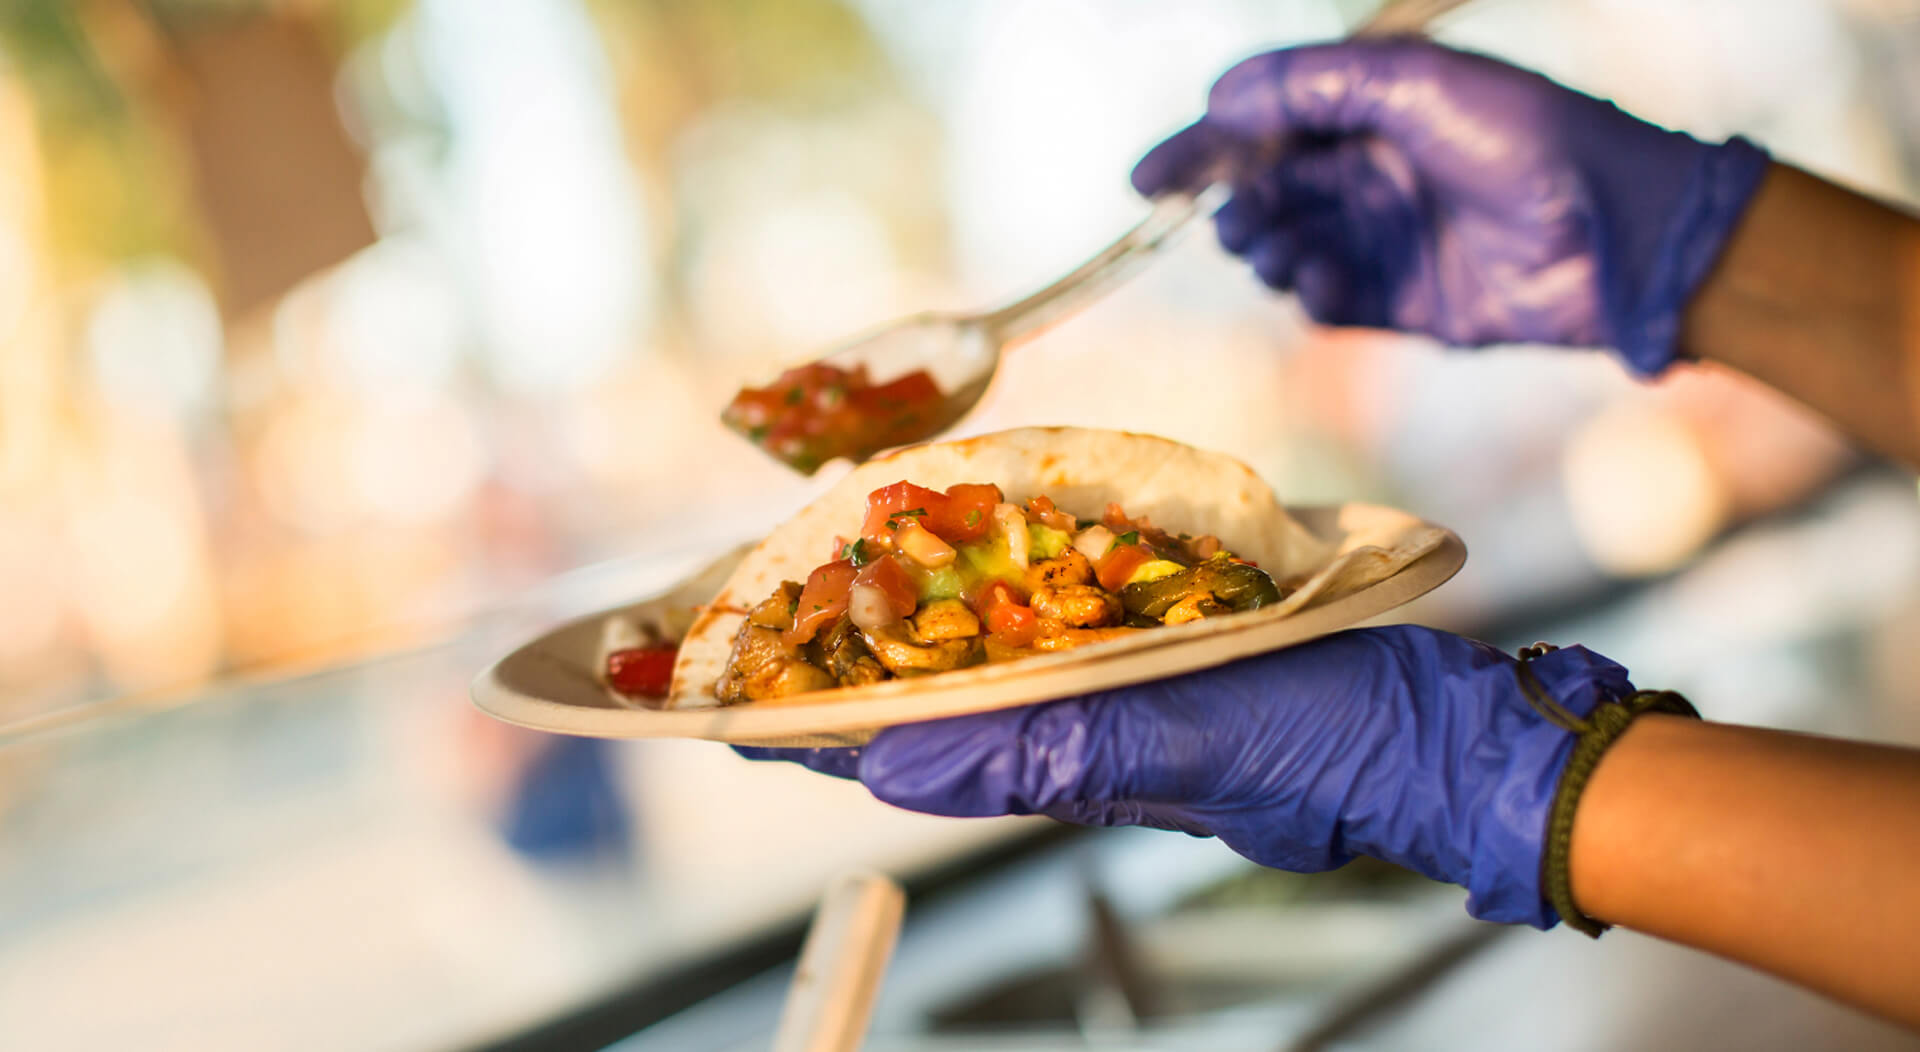 chef wearing gloves preparing tacos in a food truck